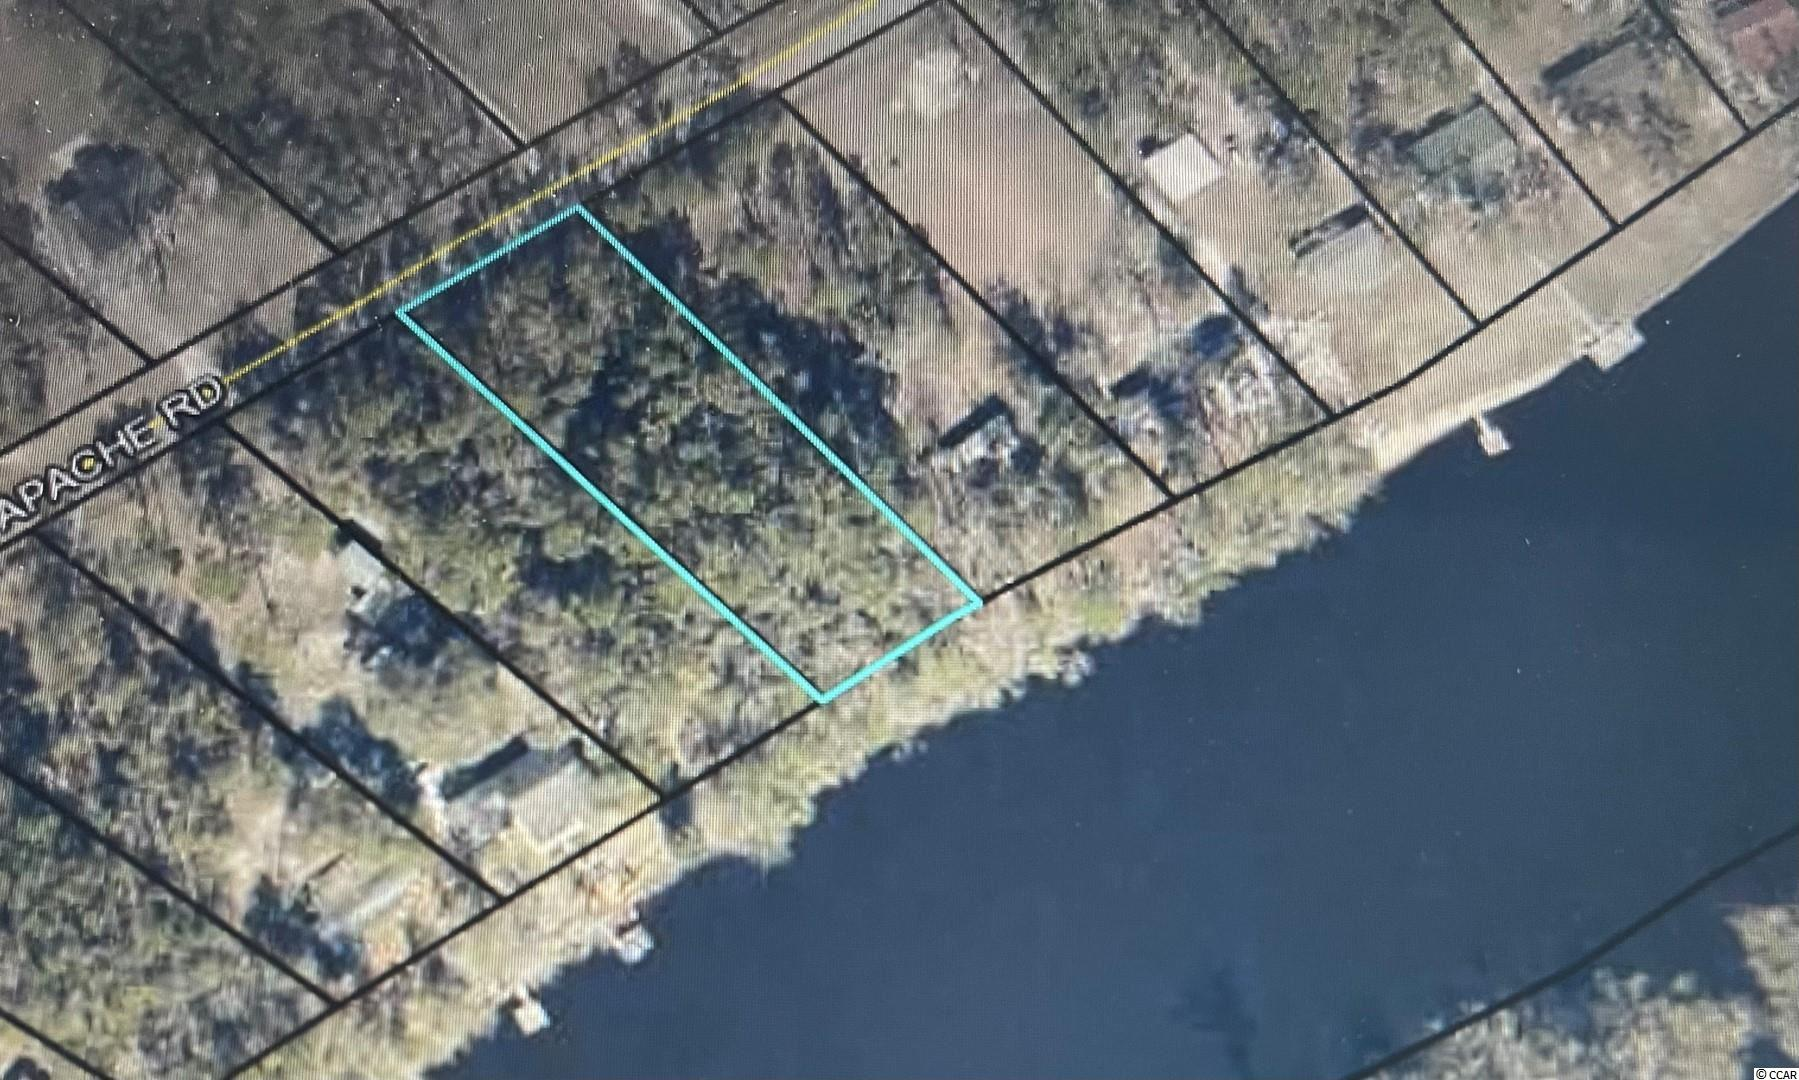 Beautiful river lot with 100 feet of river frontage just waiting for someone's dream home. Established neighborhood with it's on private boat ramp. Still close enough to Georgetown for full time living or use for a weekend getaway. Measurements are approximate and not guaranteed. Buyer responsible for verification.